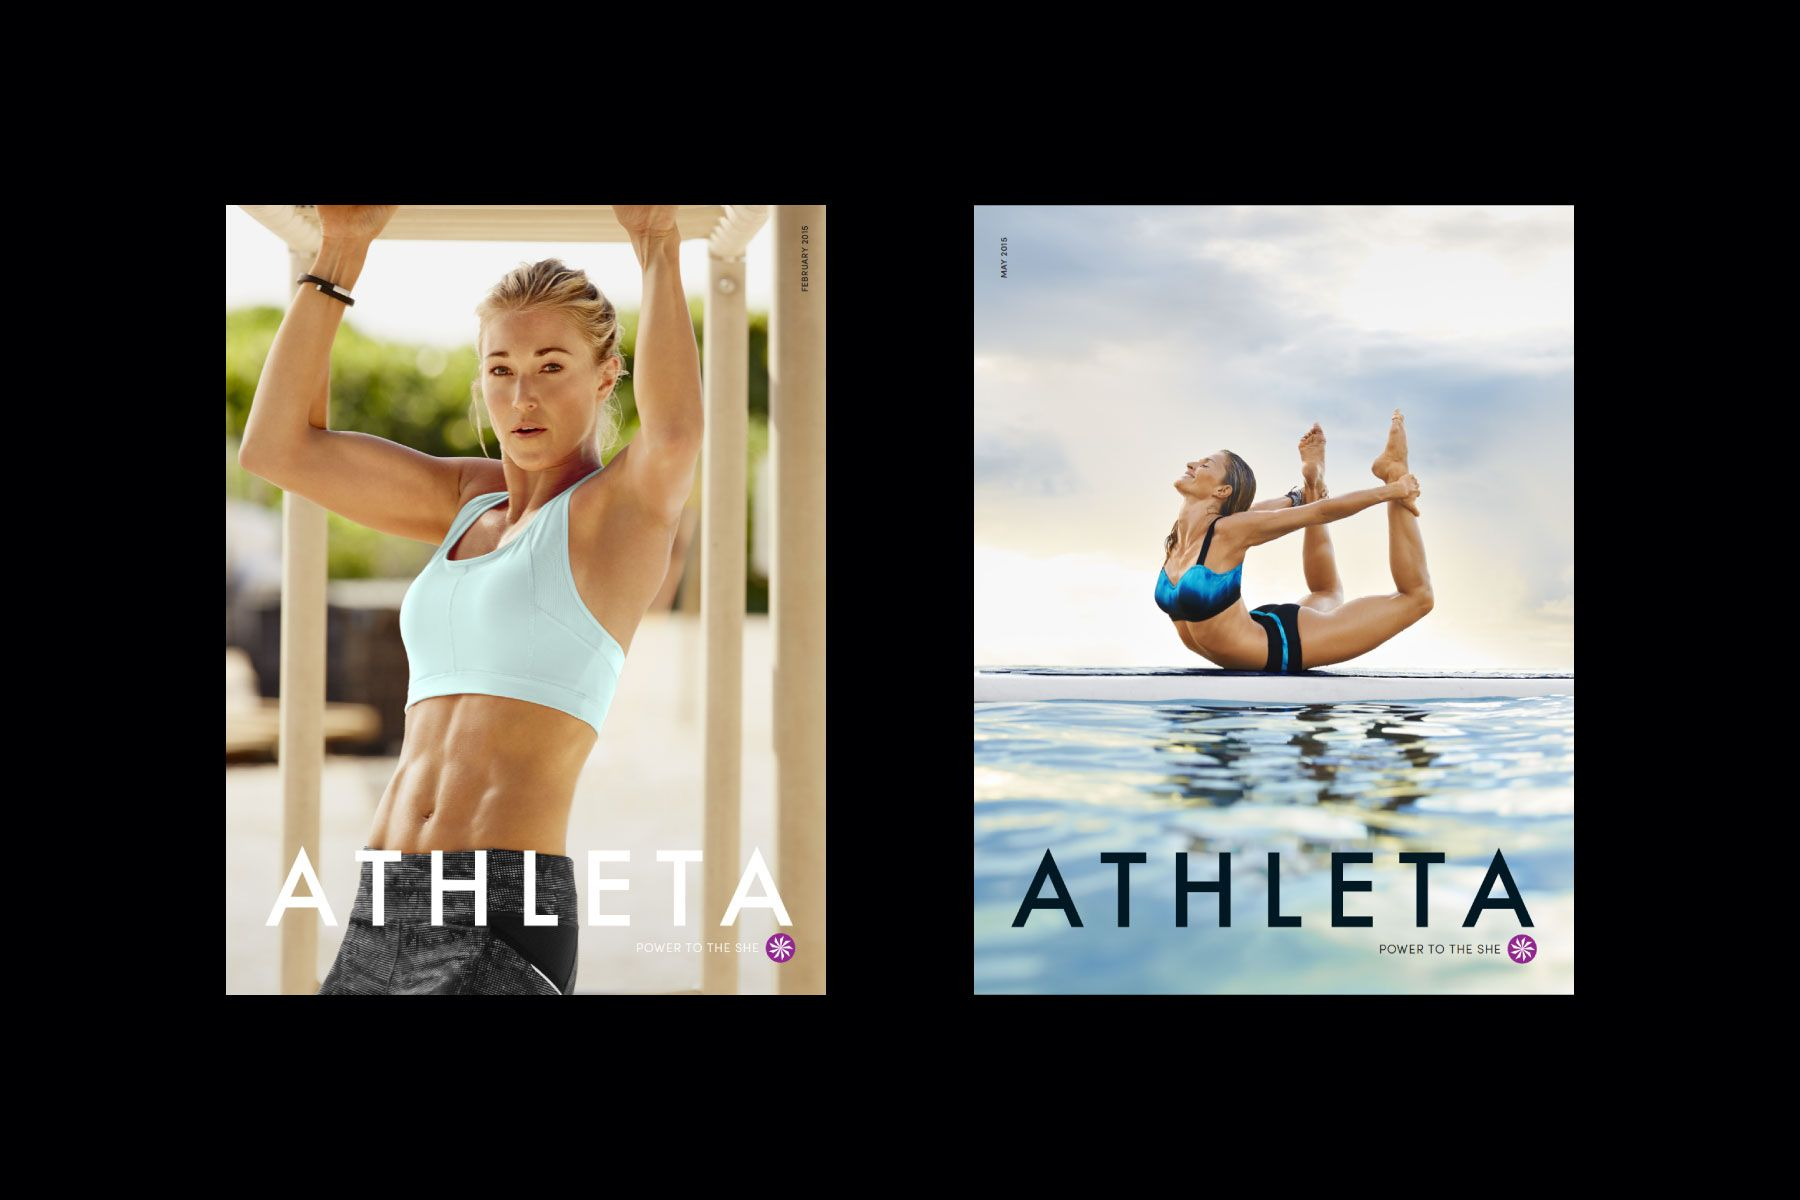 Athleta-Opening-Images2.jpg